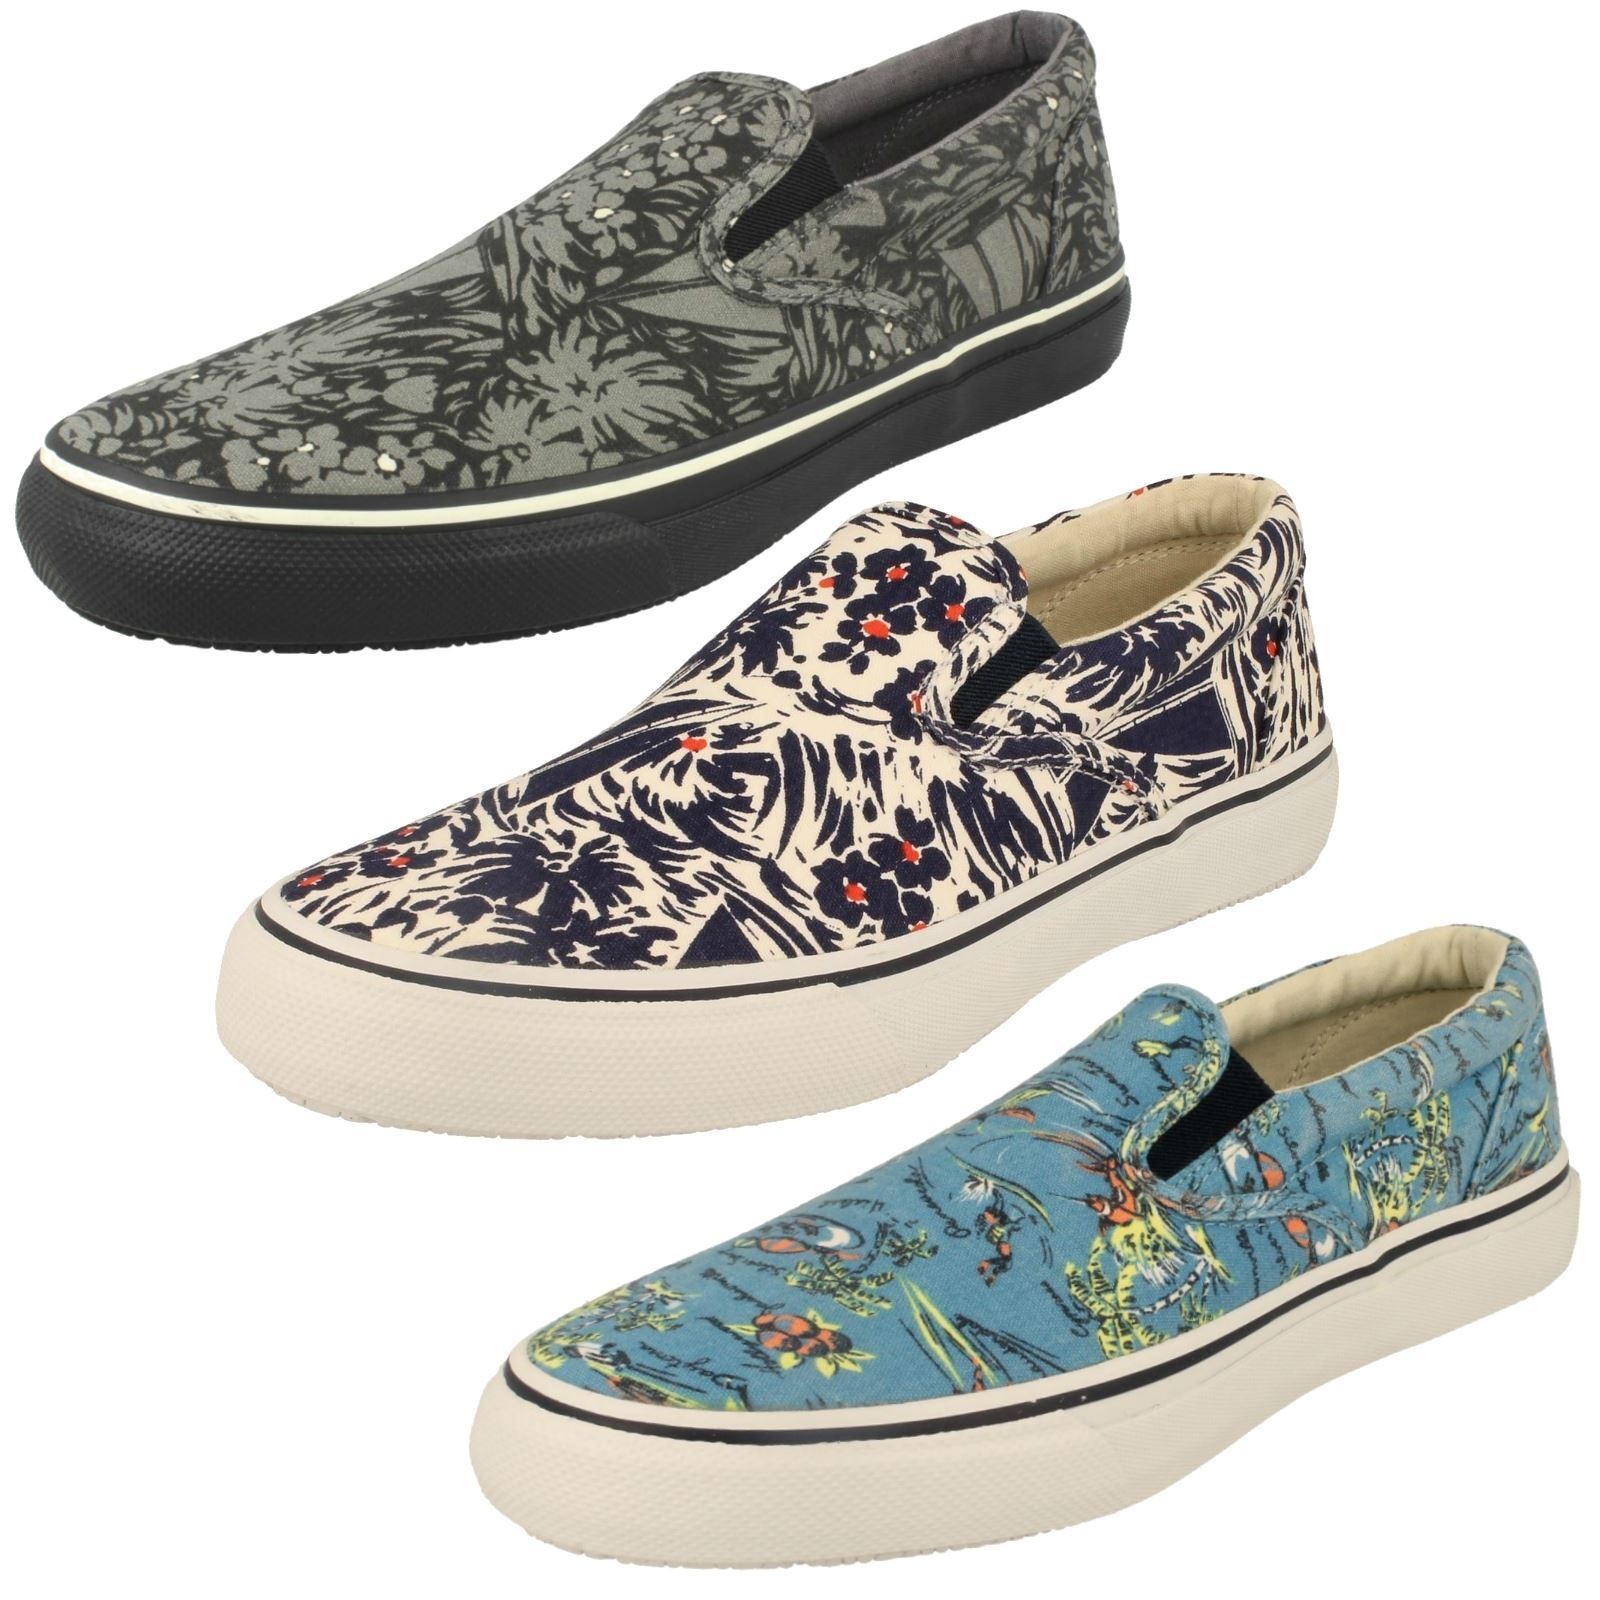 Mens Sperry This Sole Canvas So* Shoes *Striper So* Canvas aae805